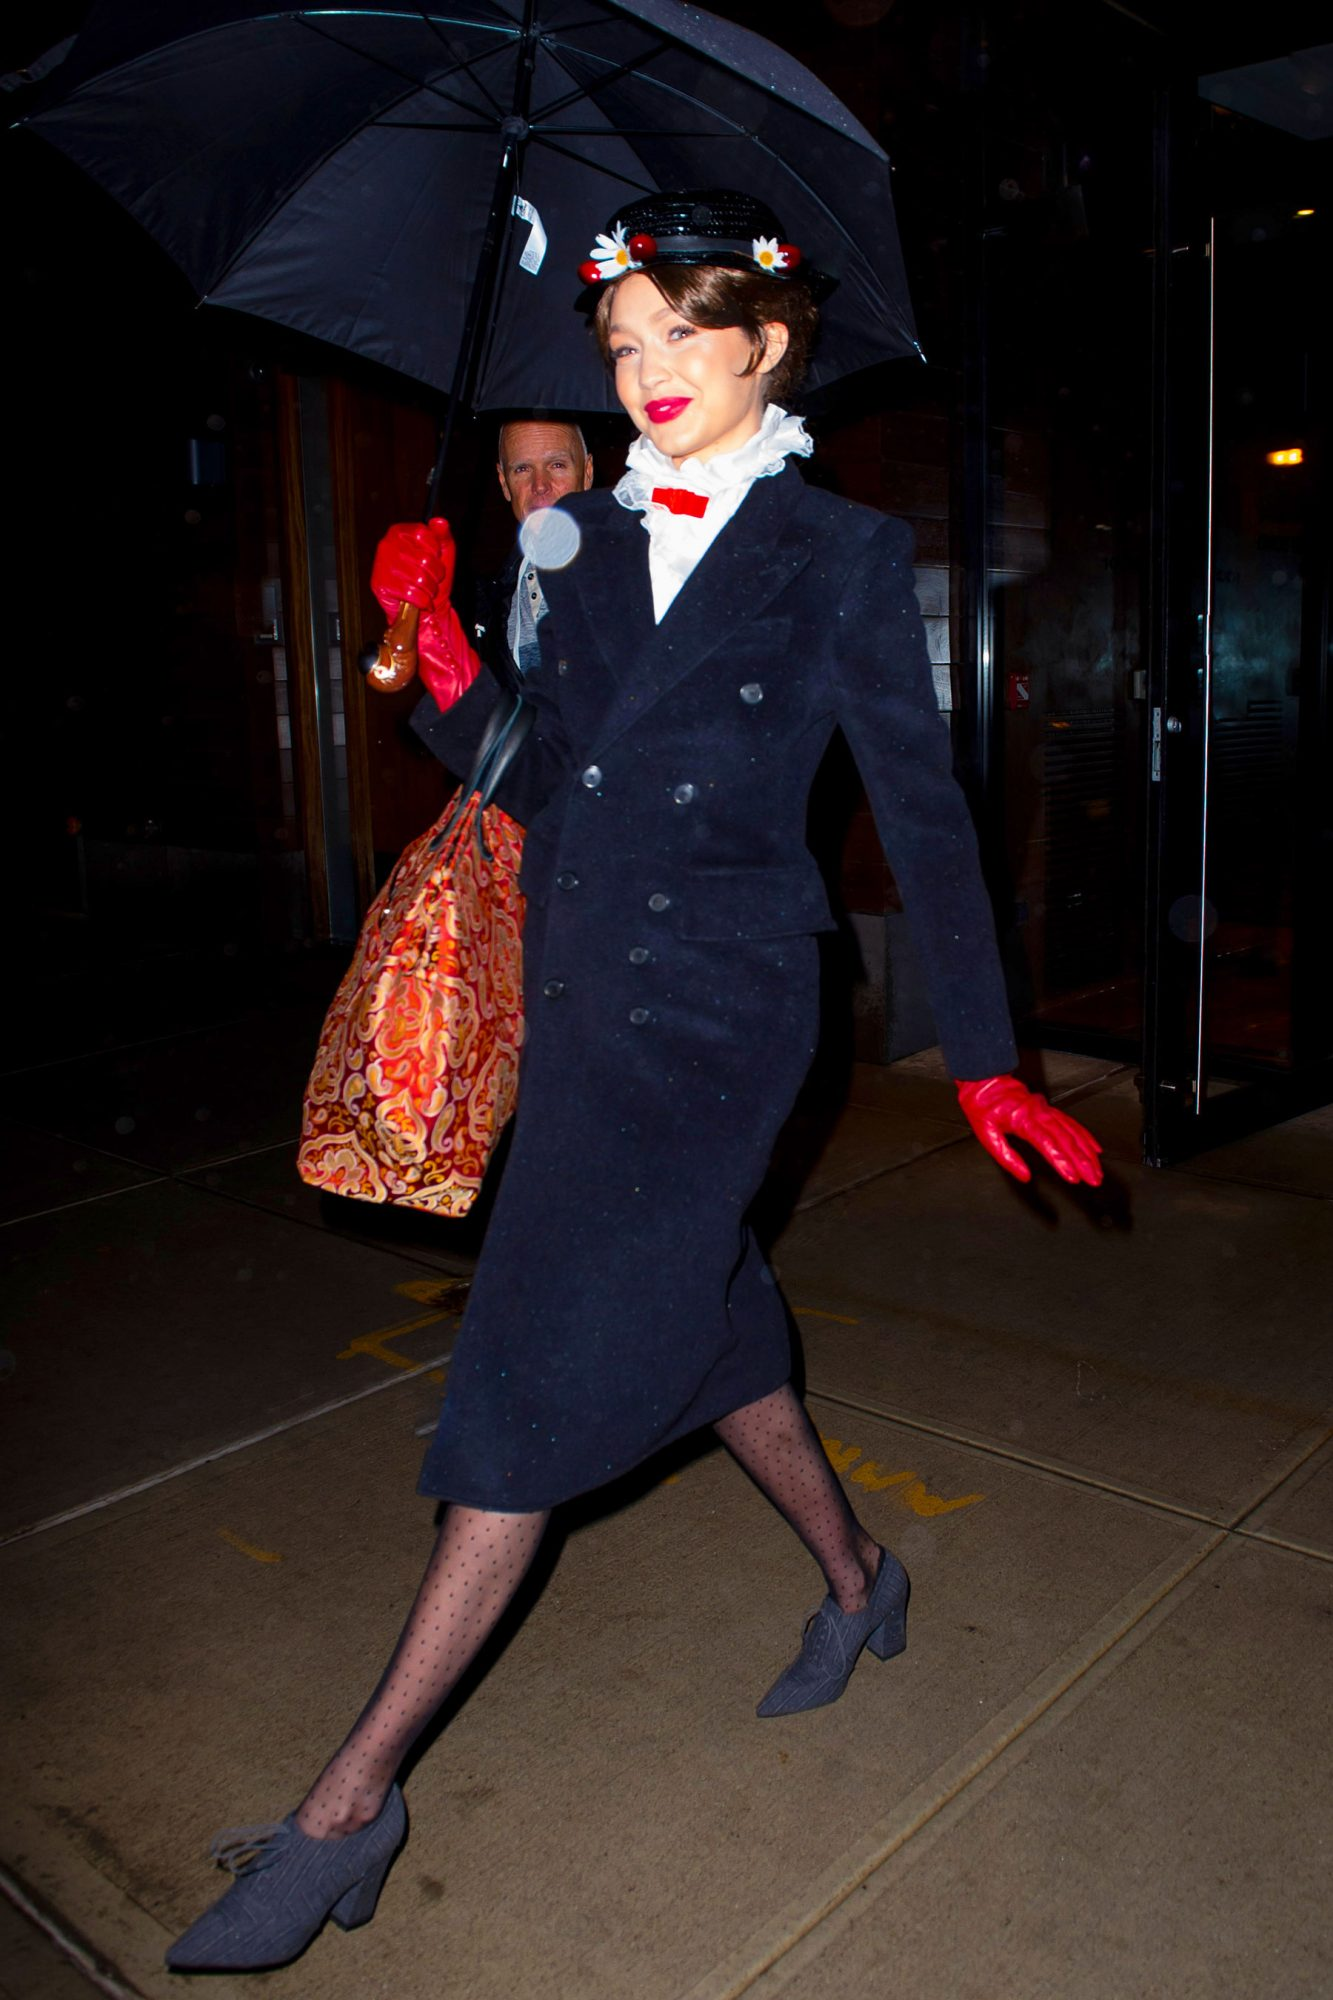 EXCLUSIVE: Gigi Hadid is Dressed as Mary Poppins as she Heads to a New Years Eve Party at Taylor Swift's Apartment in New York City.